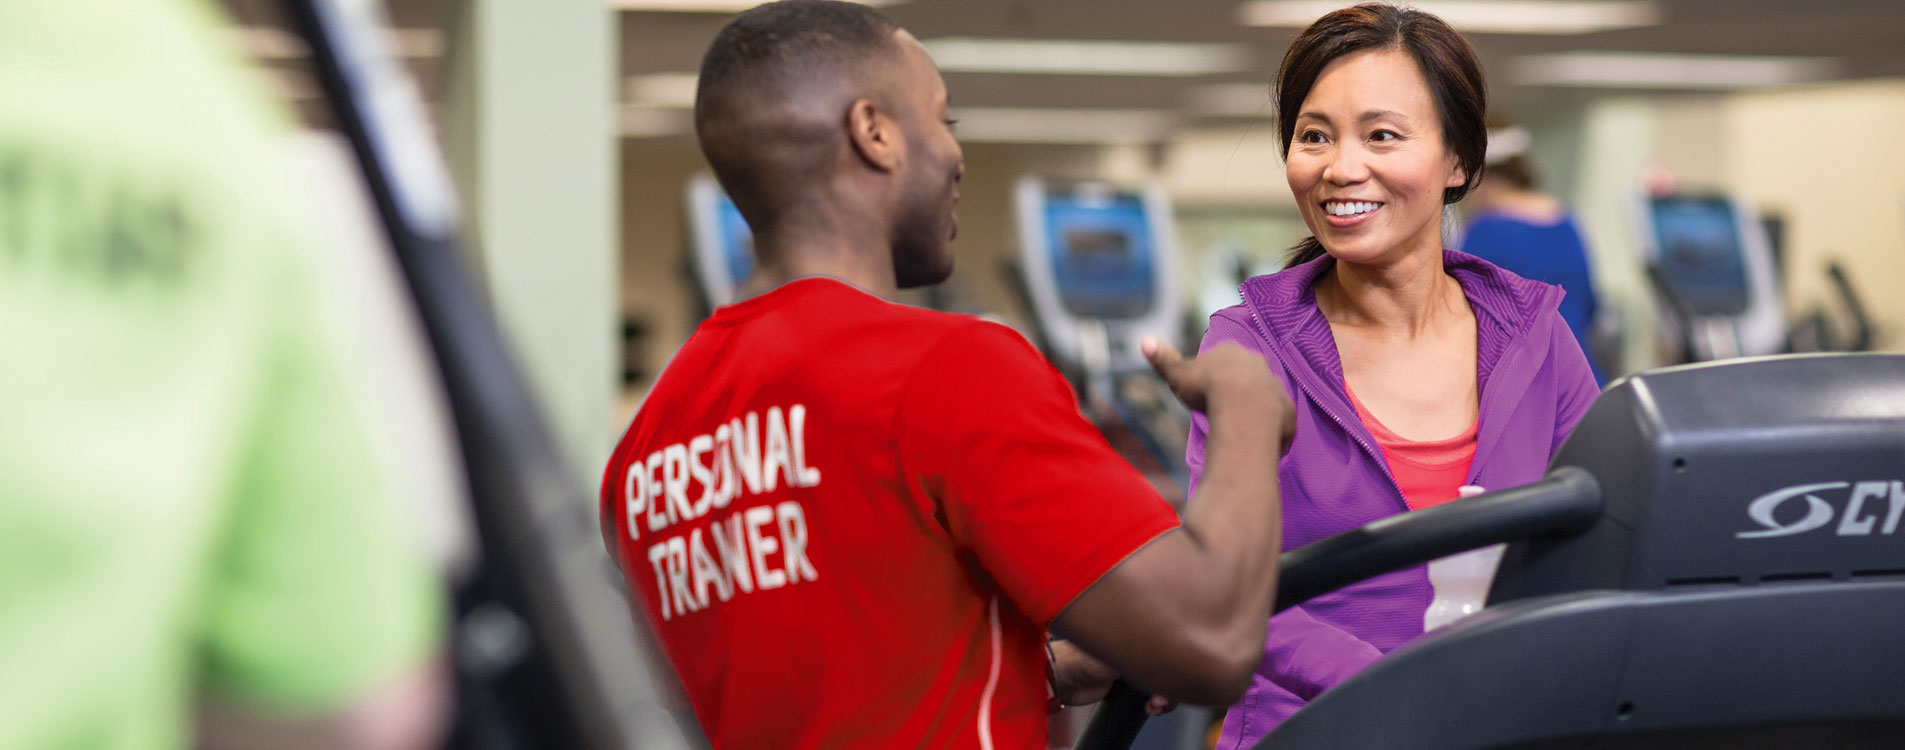 personal group training ymca of greater wichita